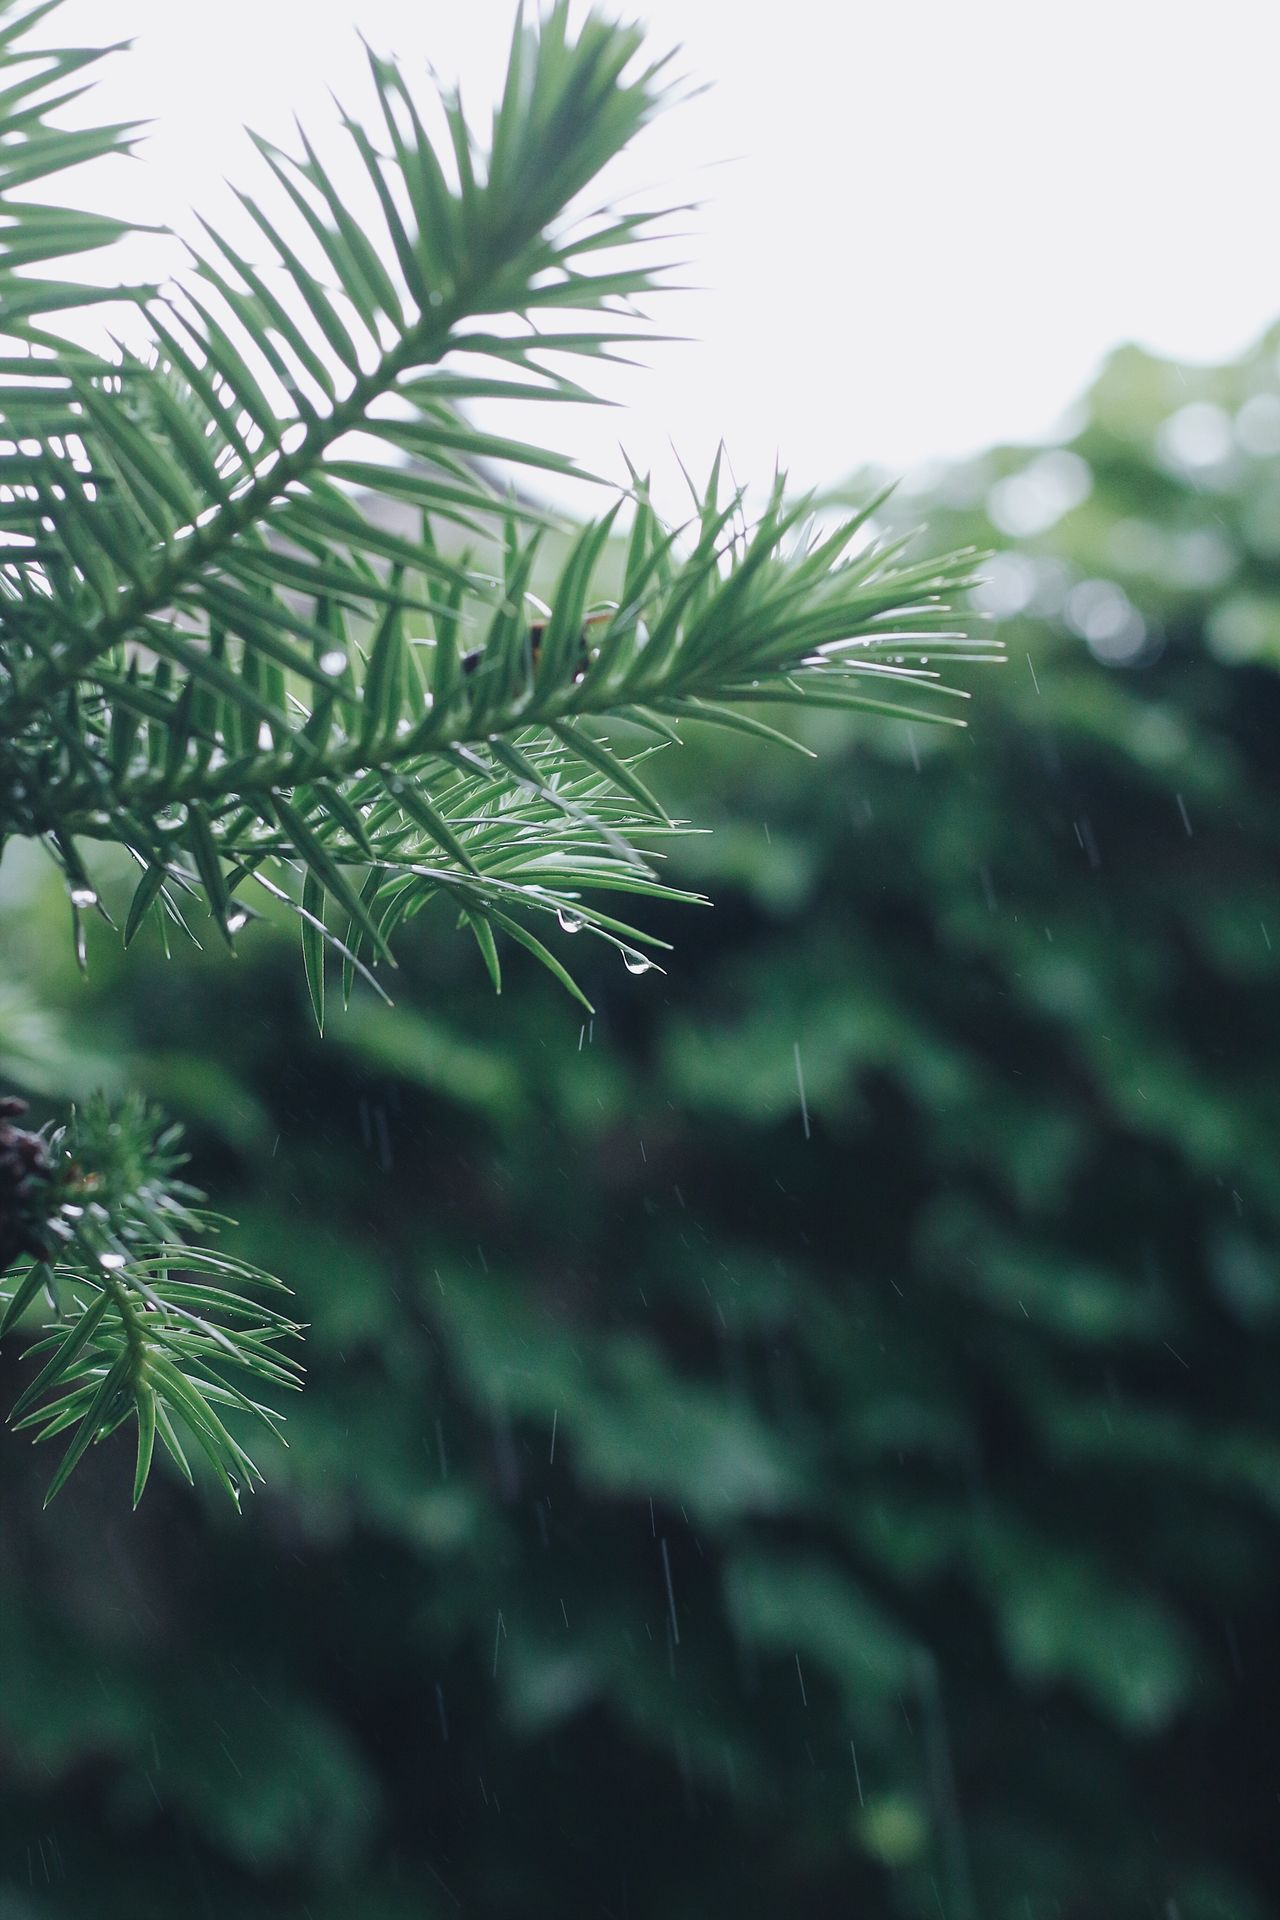 Rain Rainy Days Raindrops Nature Growth Close-up Focus On Foreground No People Leaf Day Green Color Beauty In Nature Plant Outdoors Freshness Tree Water Leaves_collection EyeEmNewHere From My Point Of View Pine Tree Pine Leaves Freshness Green